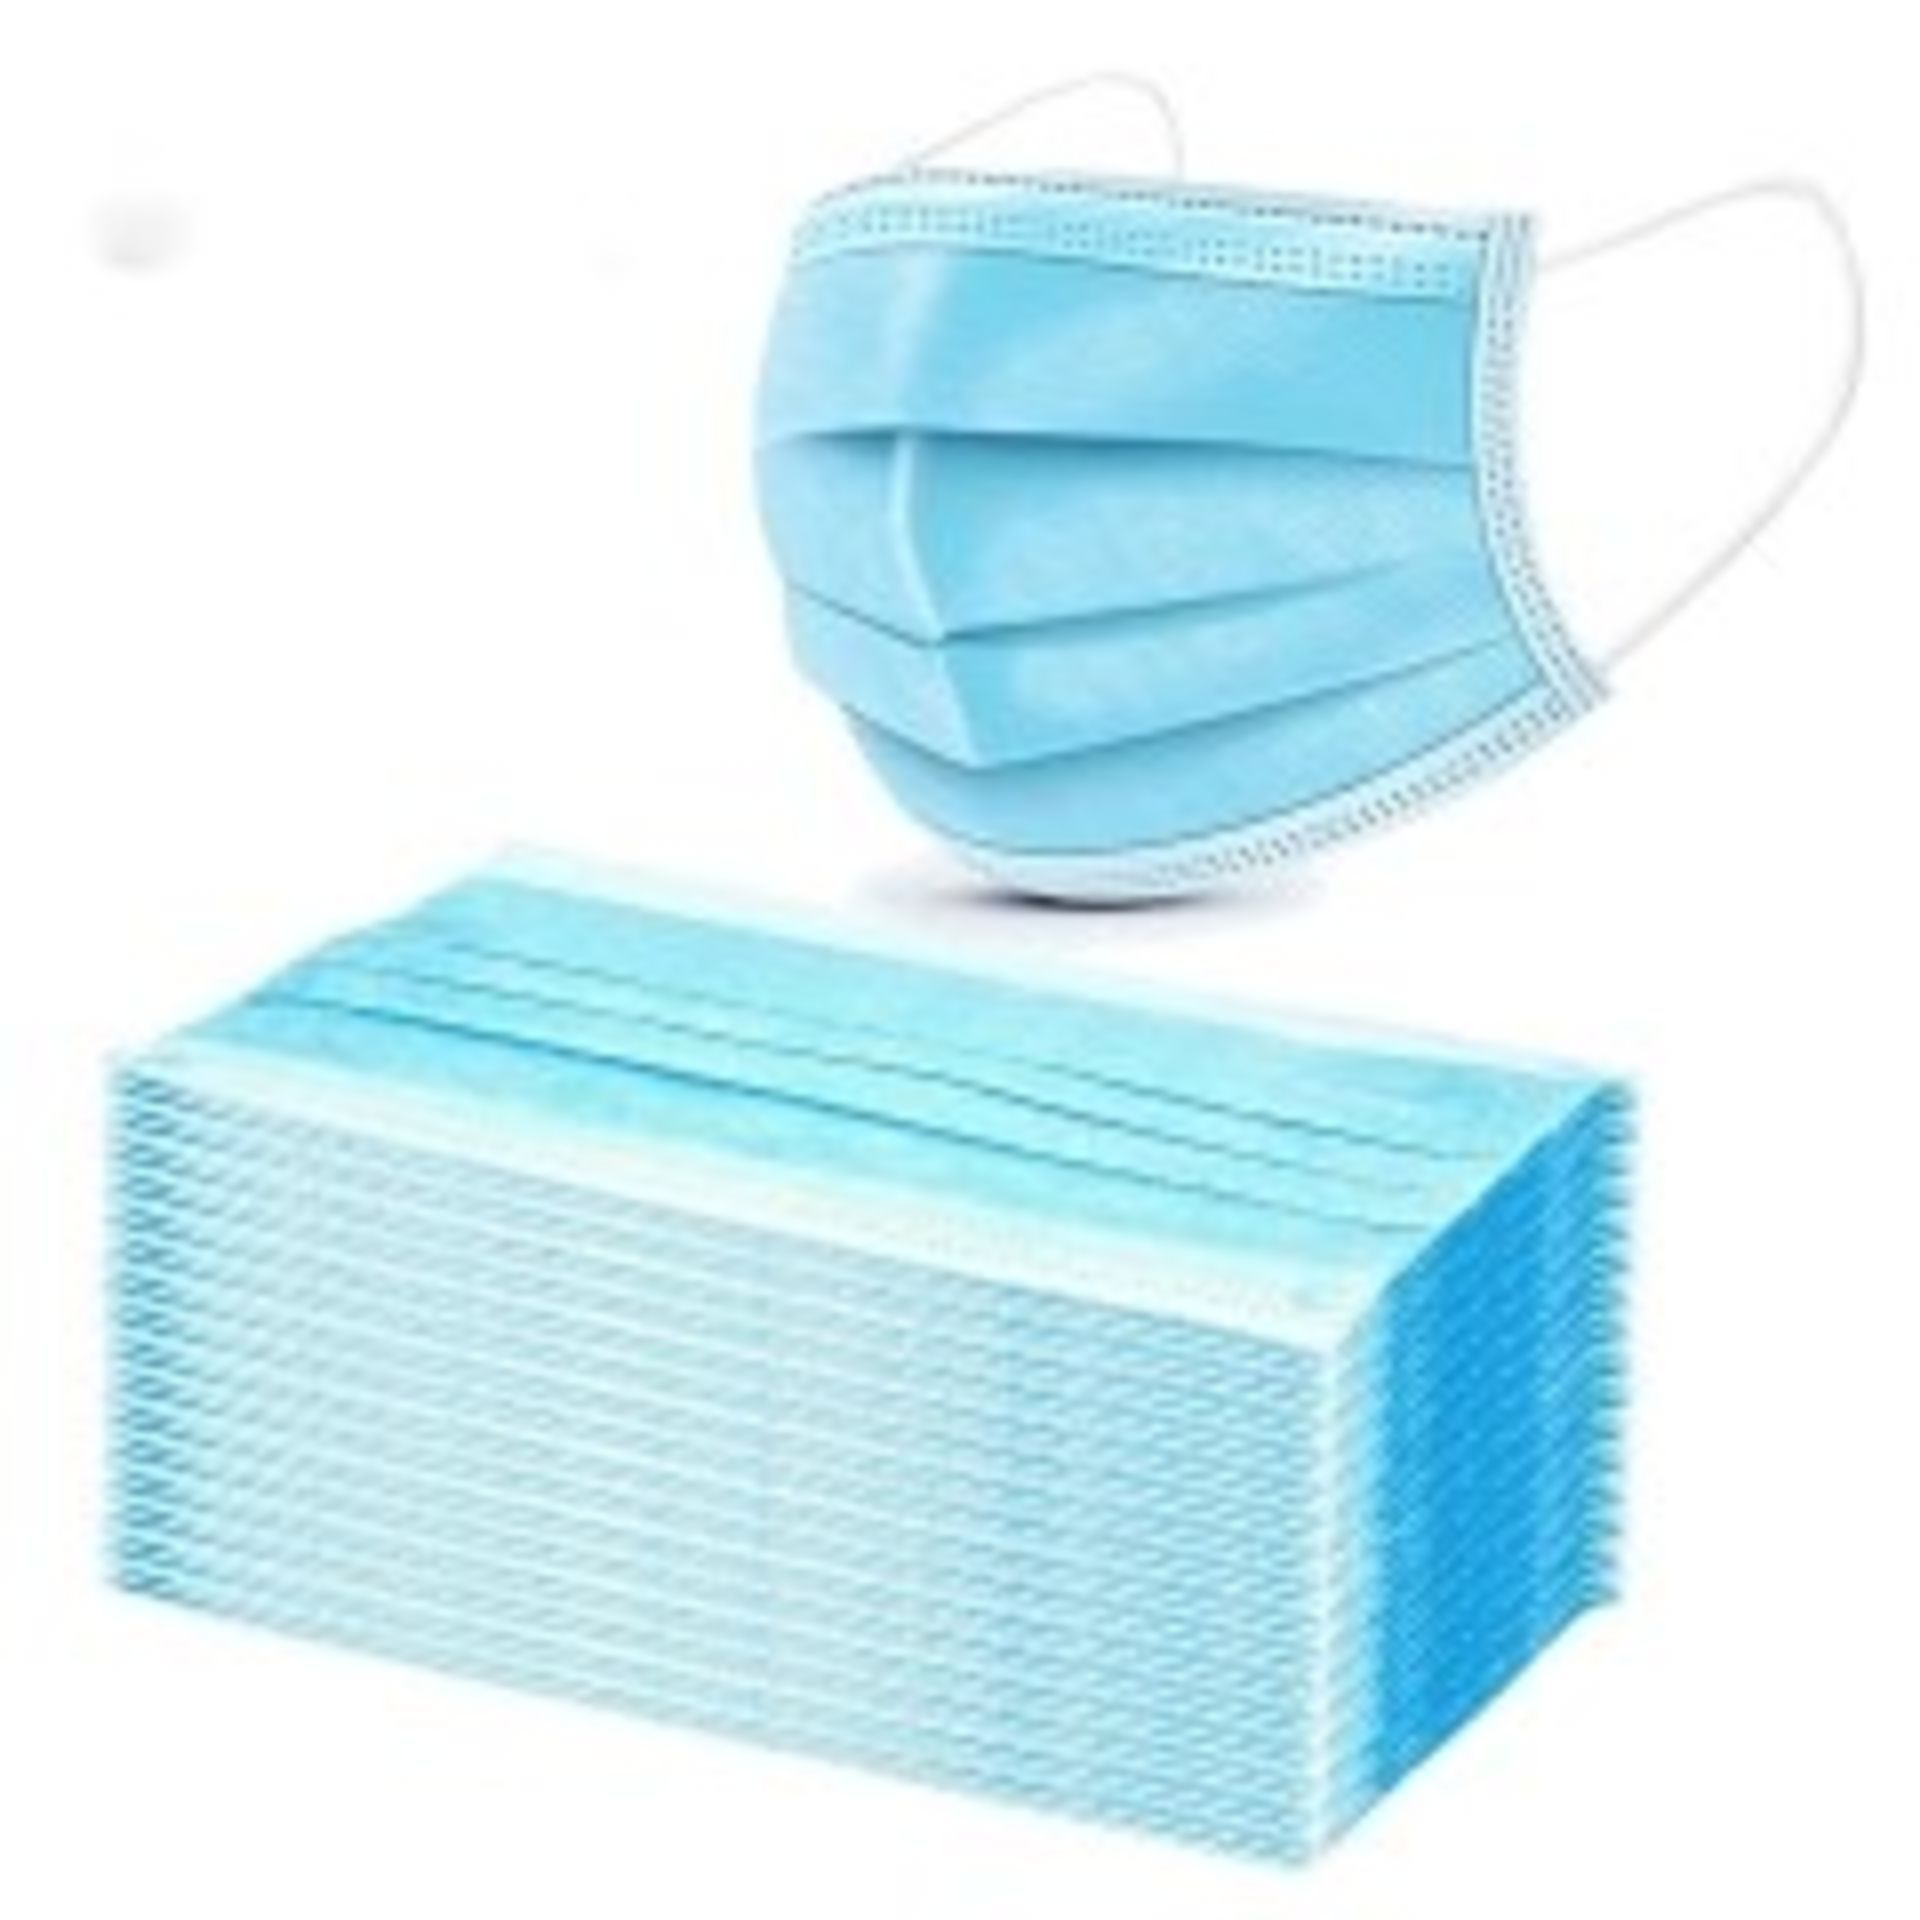 Lot 35 - 1,000 IN TOTAL 3 X PLY DISPOSABLE FACE MASKS *NO VAT*